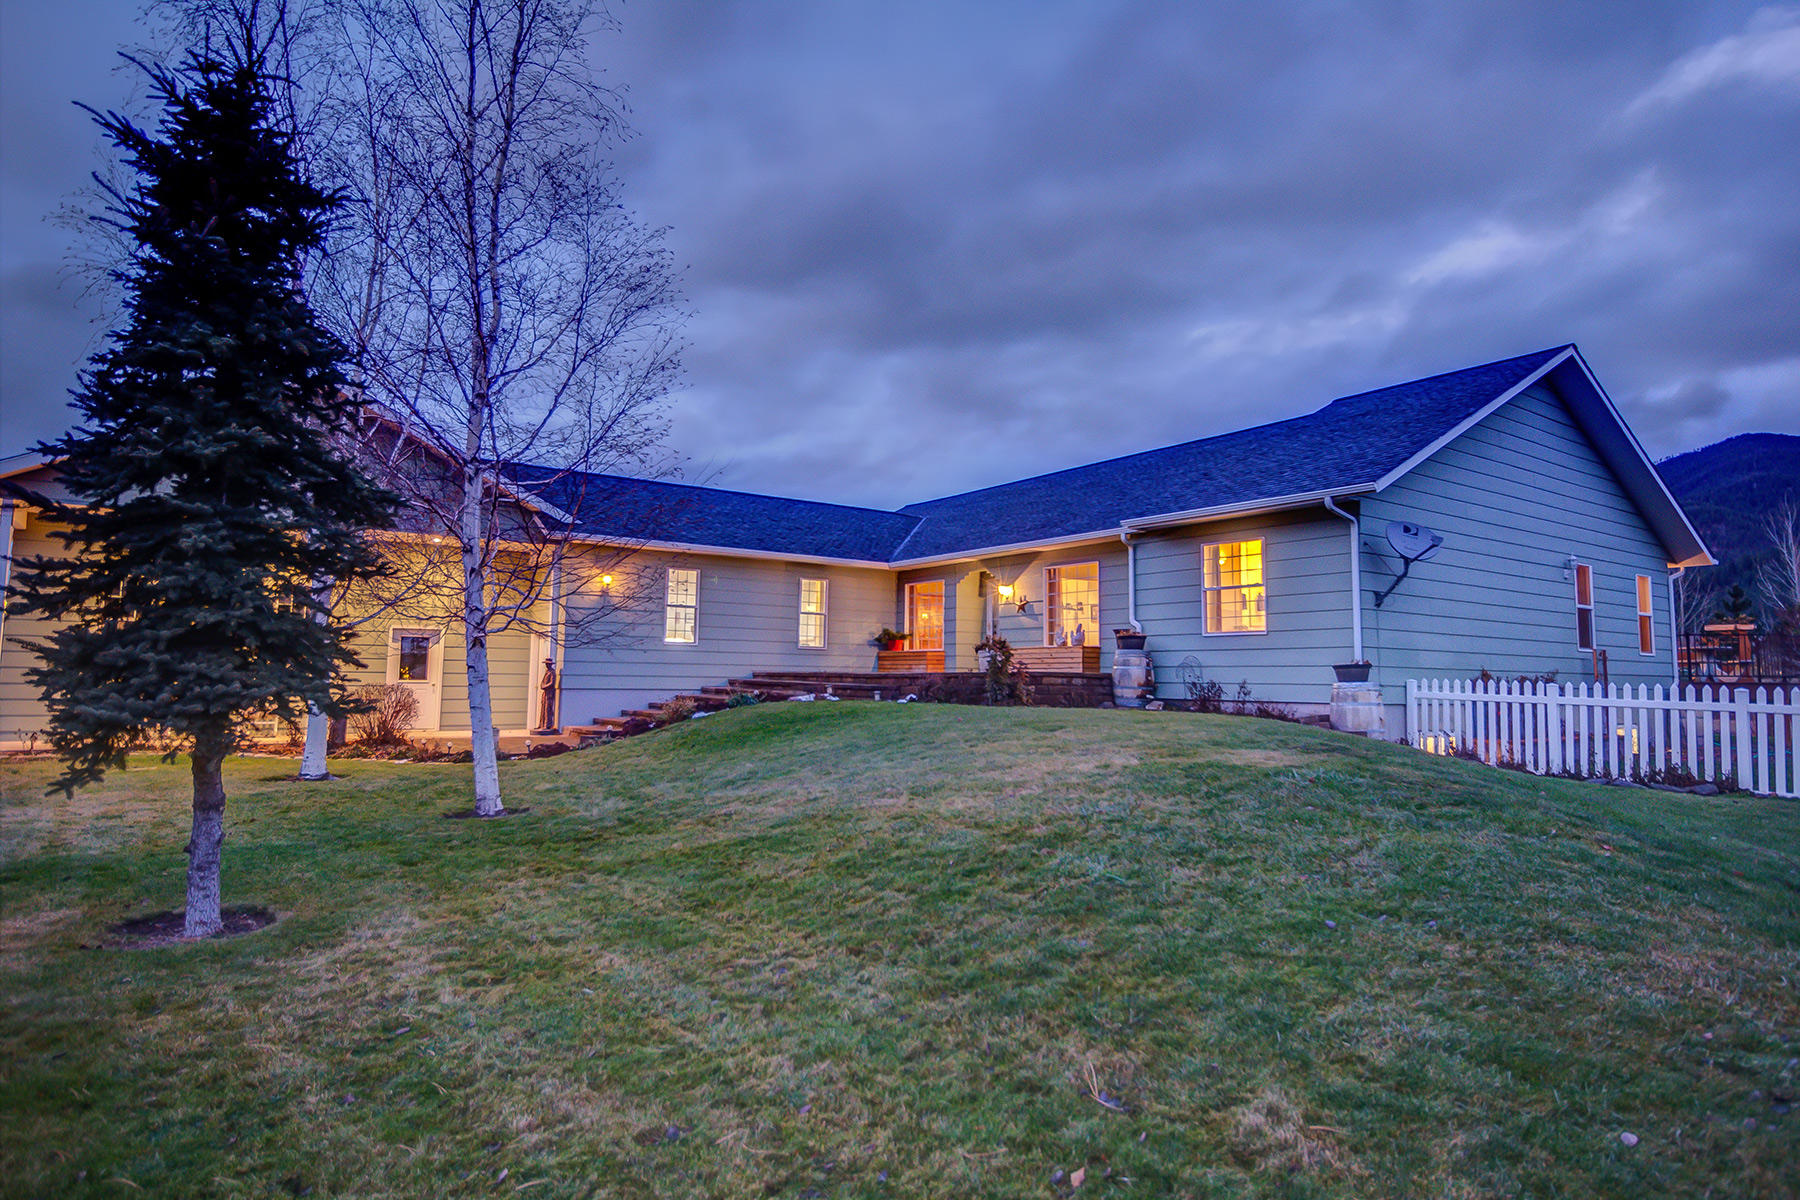 Single Family Home for Sale at 18060 Hodown Lane Frenchtown, Montana 59834 United States